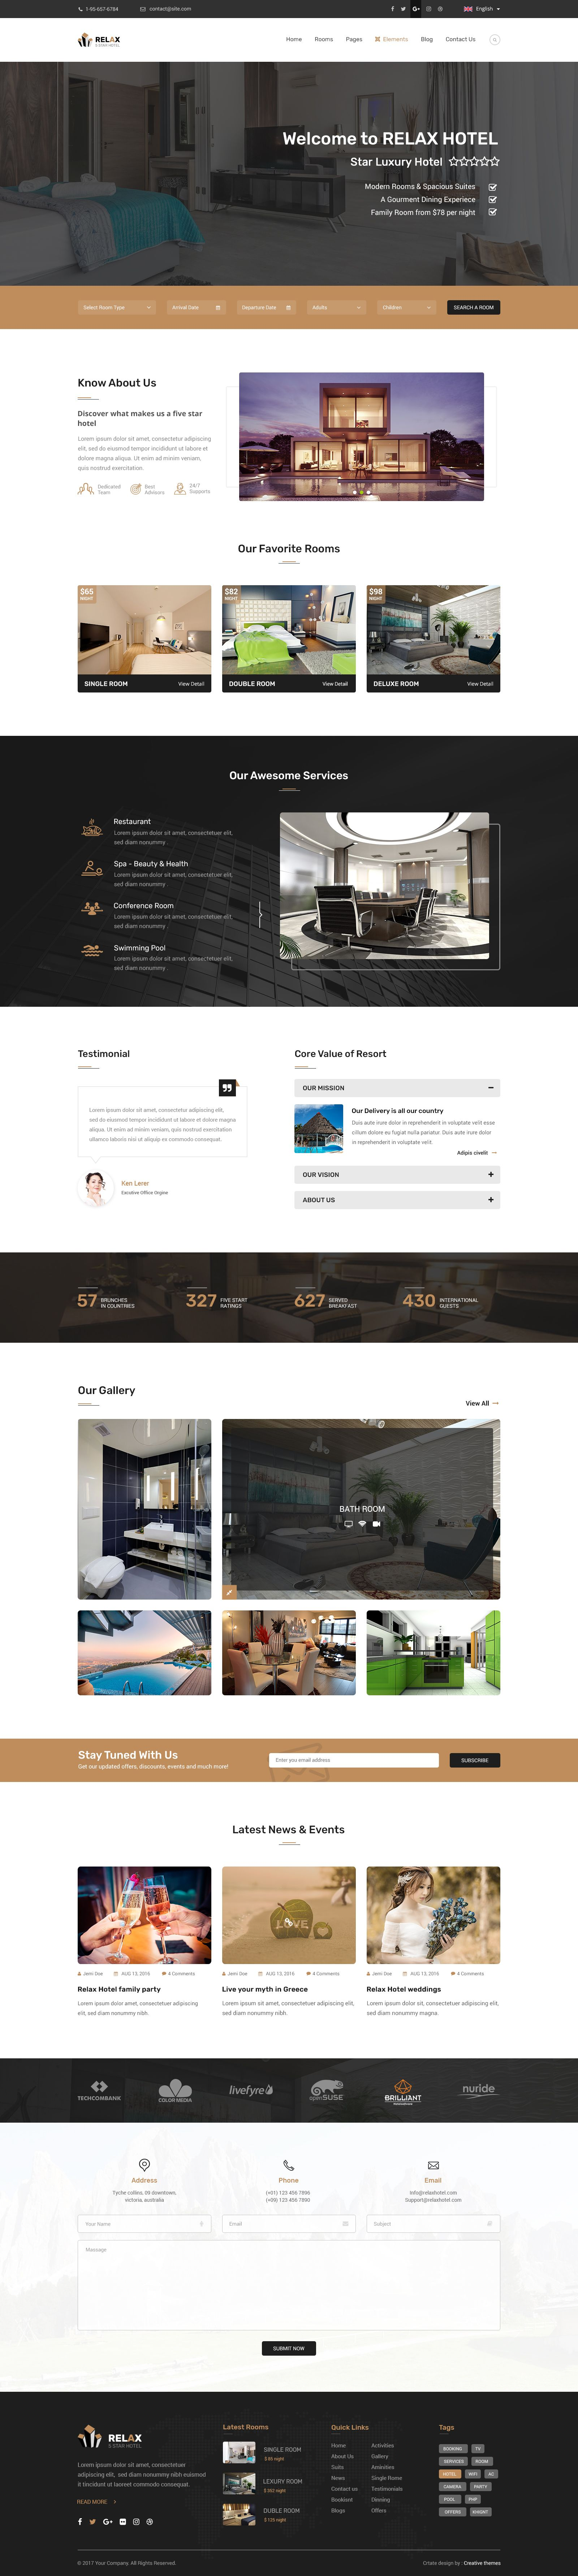 Hotel Relax for Reservation, Resort and Spa PSD Template | Psd ...